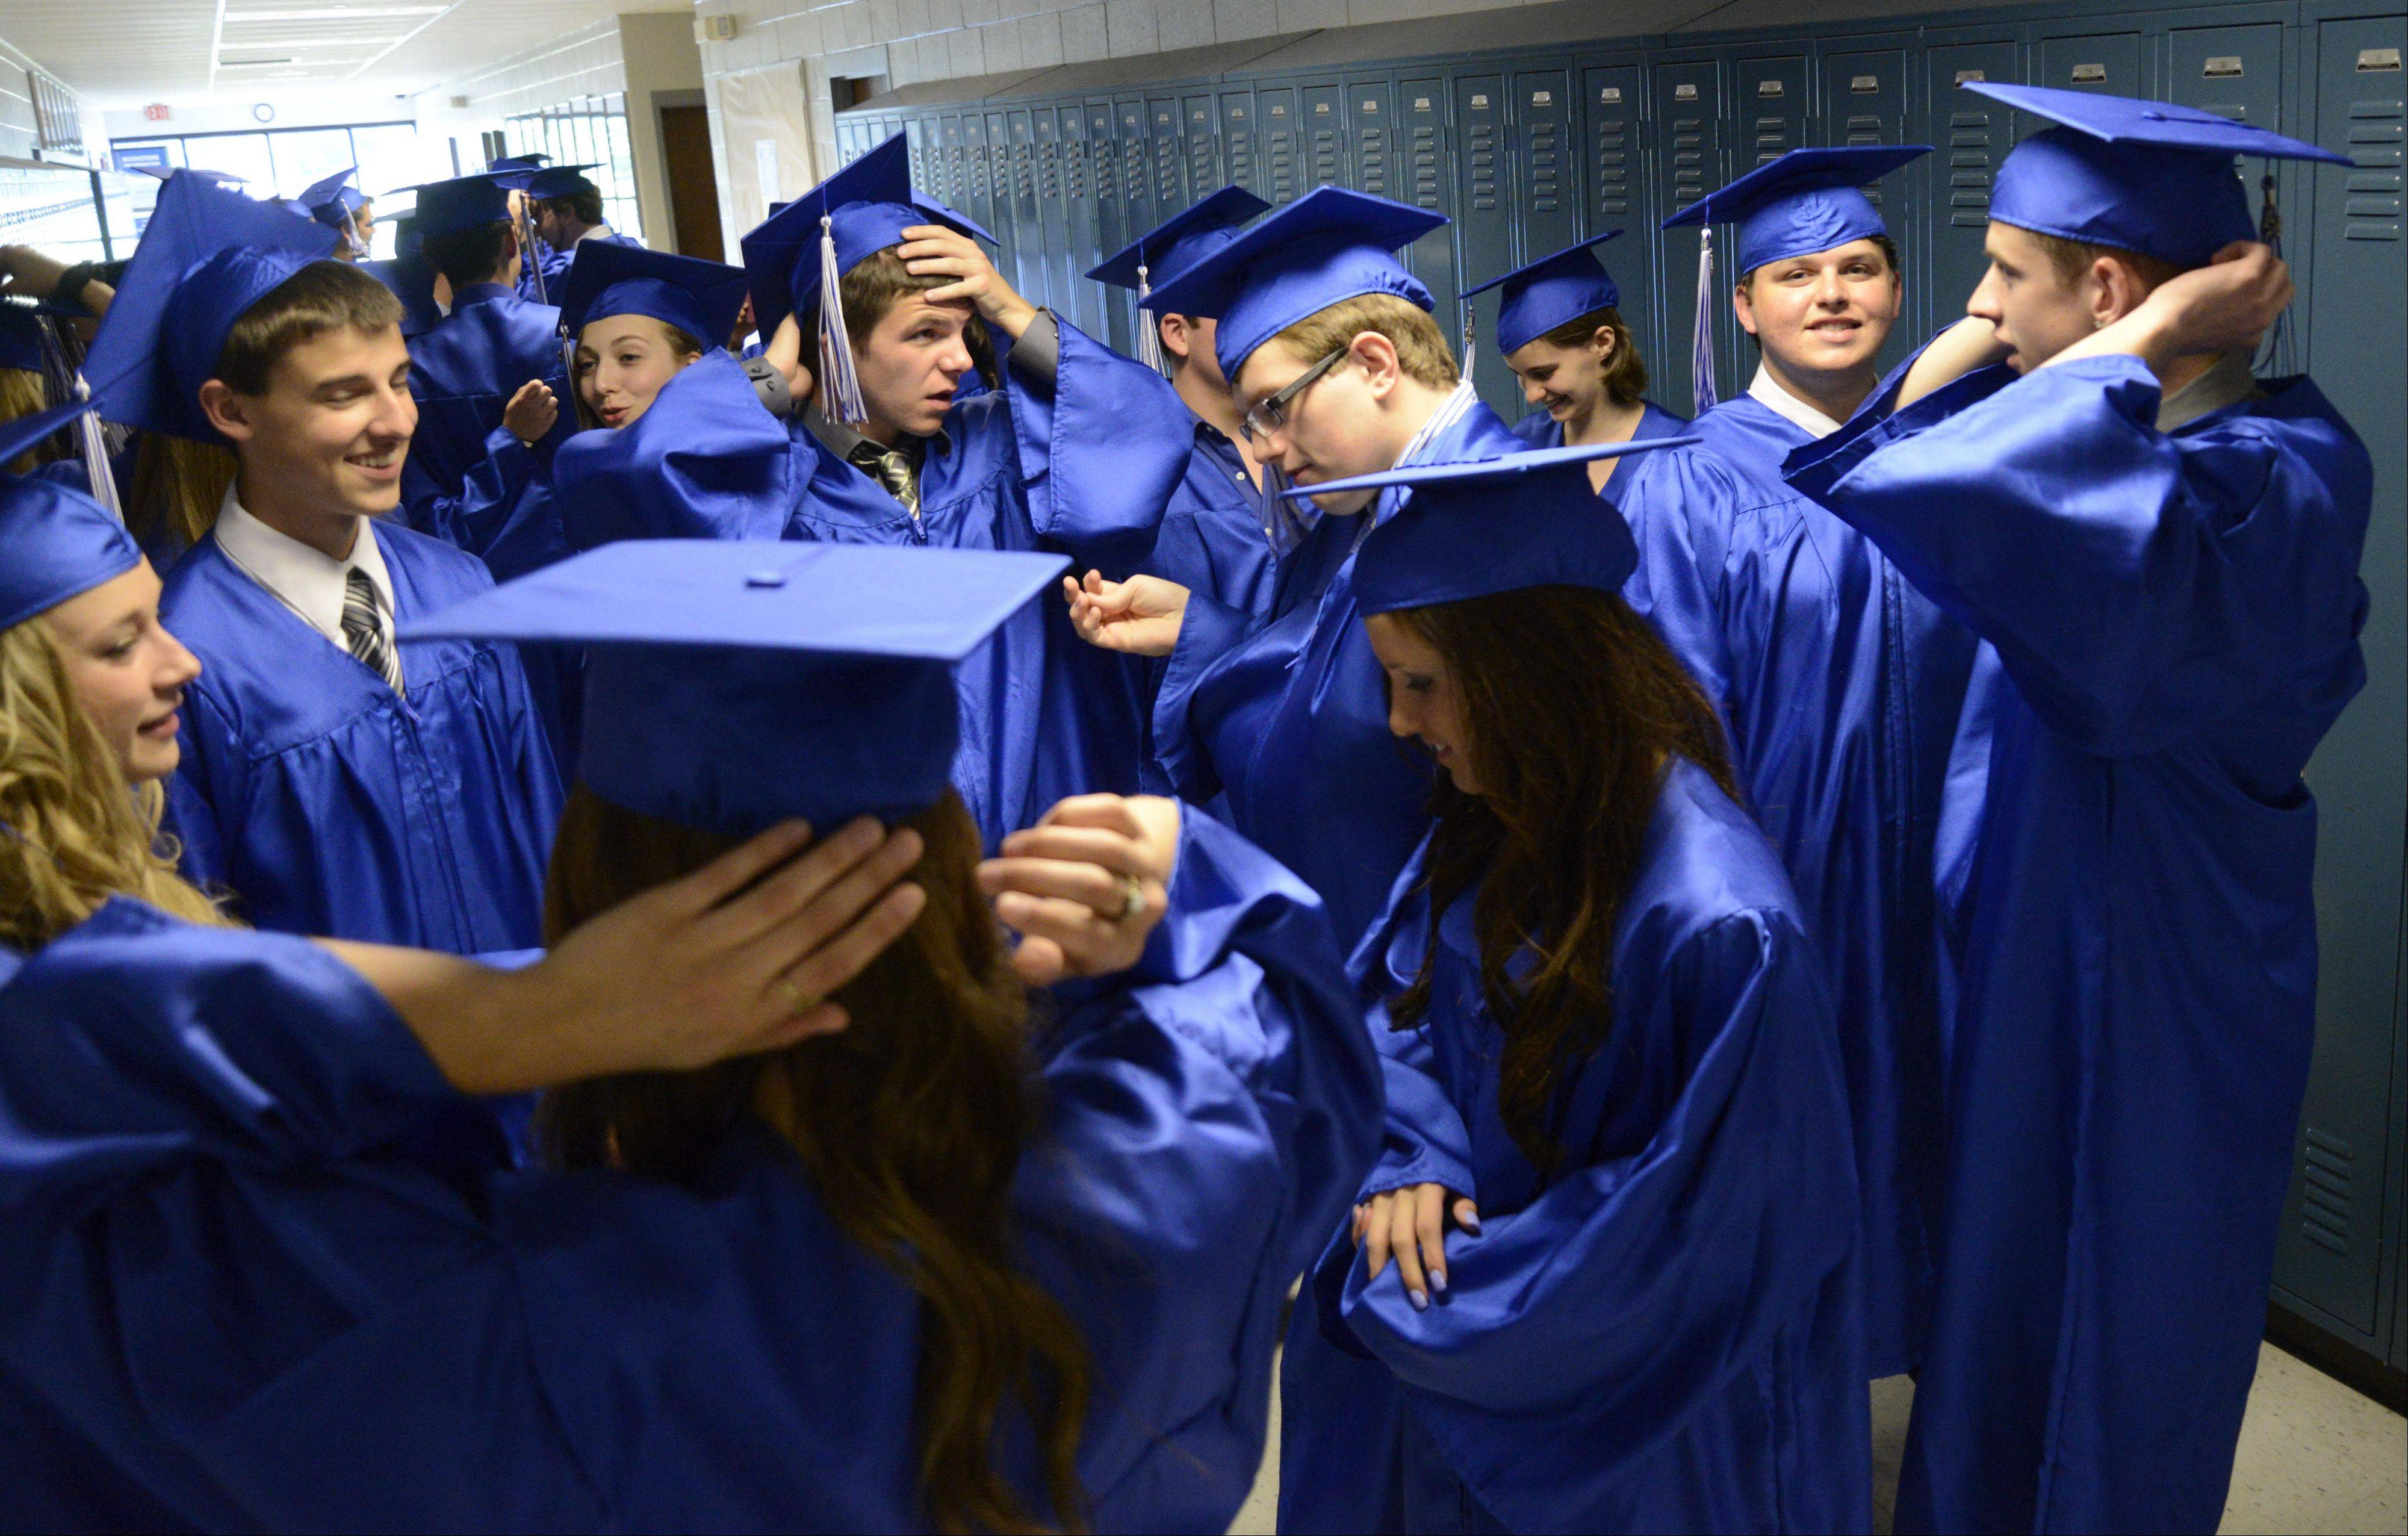 Images from the Westminster Christian High School graduation ceremony Friday, May 24, 2013 in Elgin.